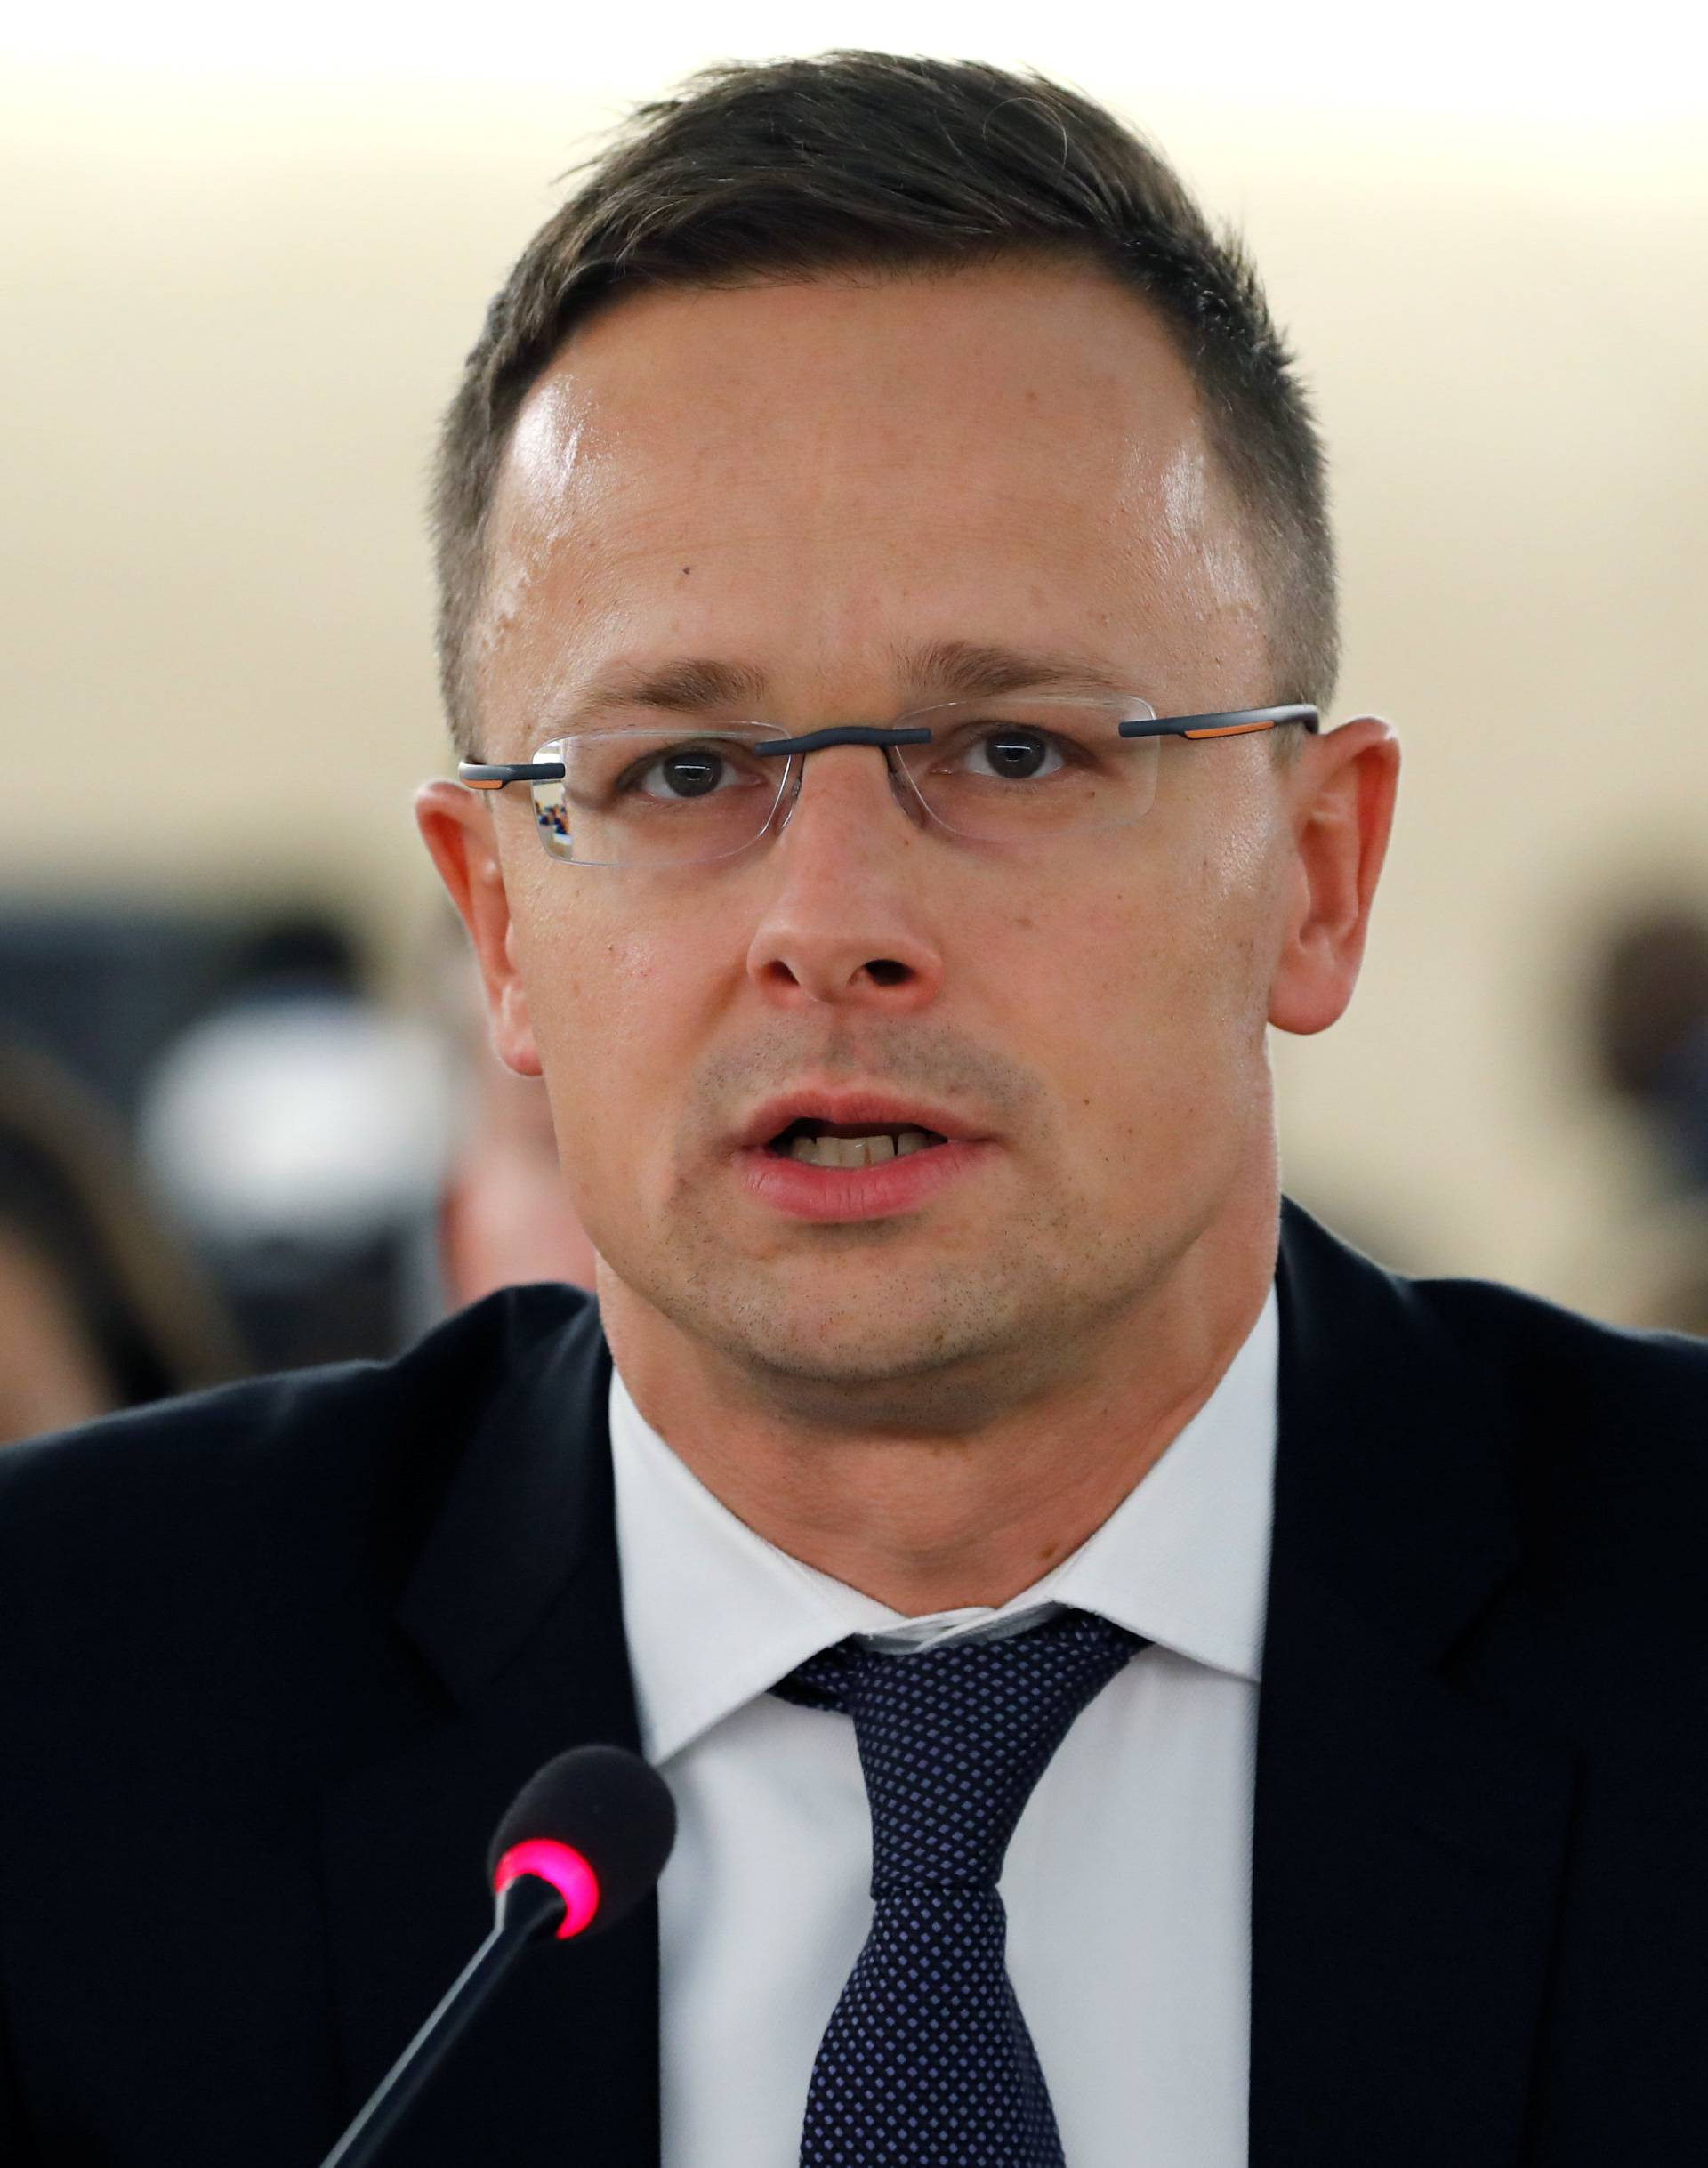 Hungarian Foreign Minister Szijjarto addresses the Human Rights Council at the United Nations in Geneva